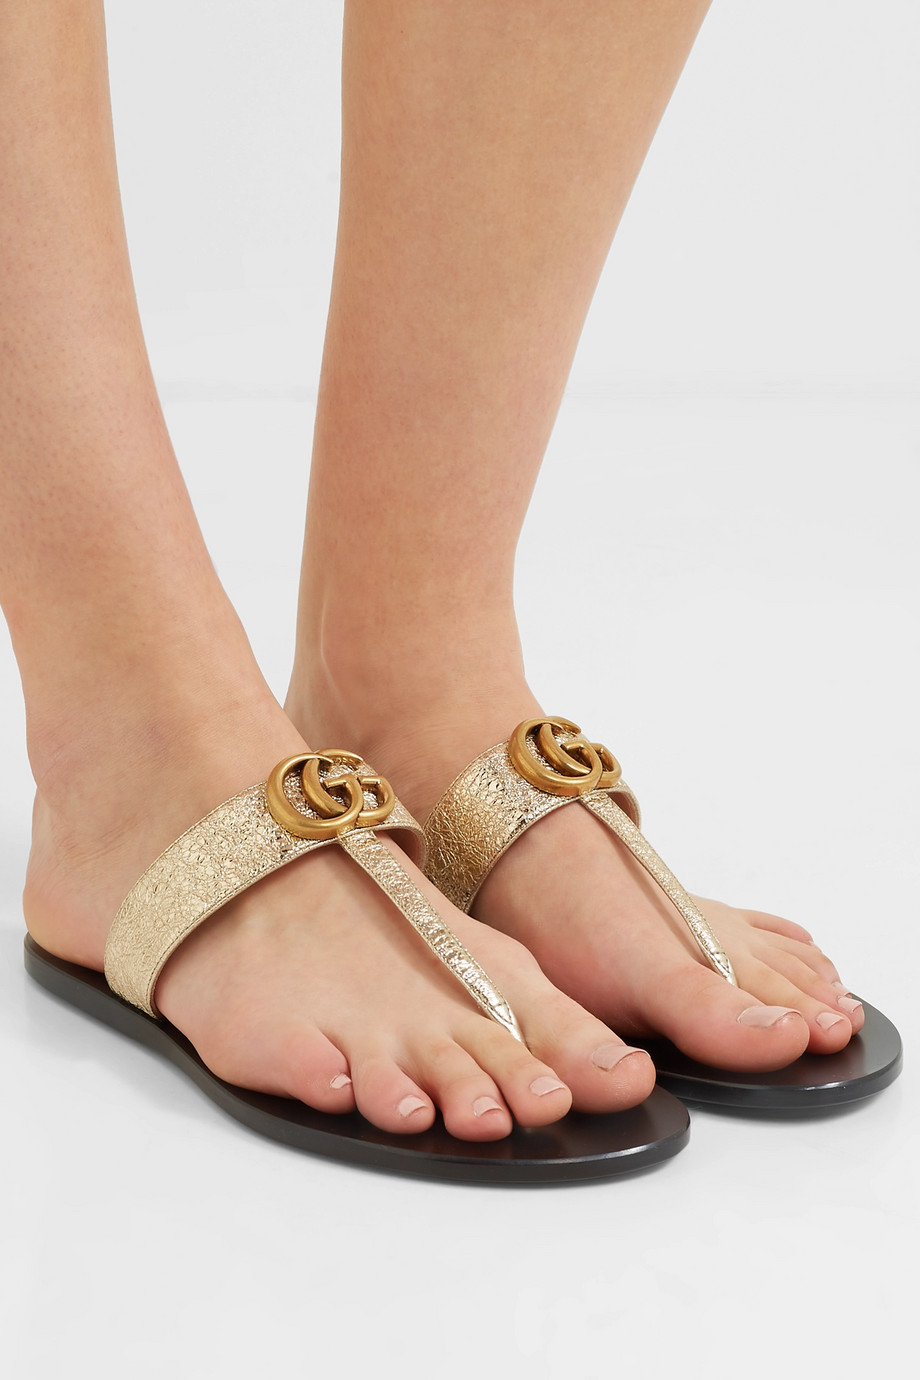 Gucci Marmont logo-embellished metallic textured-leather sandals